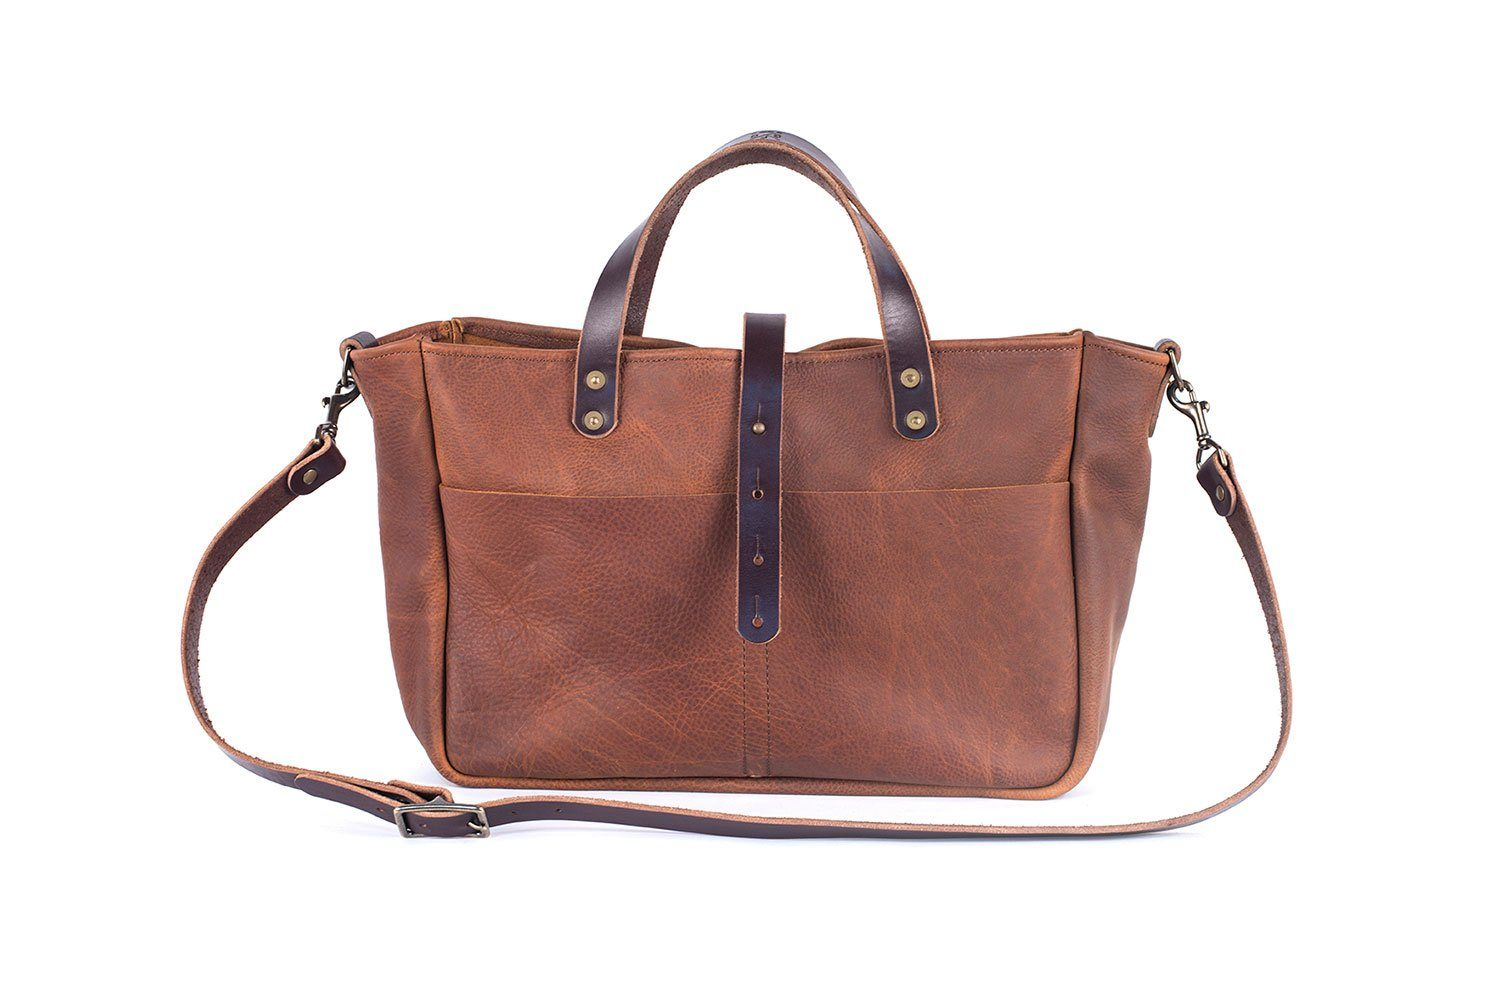 BUCHANAN LEATHER TOTE BAG / BRIEFCASE